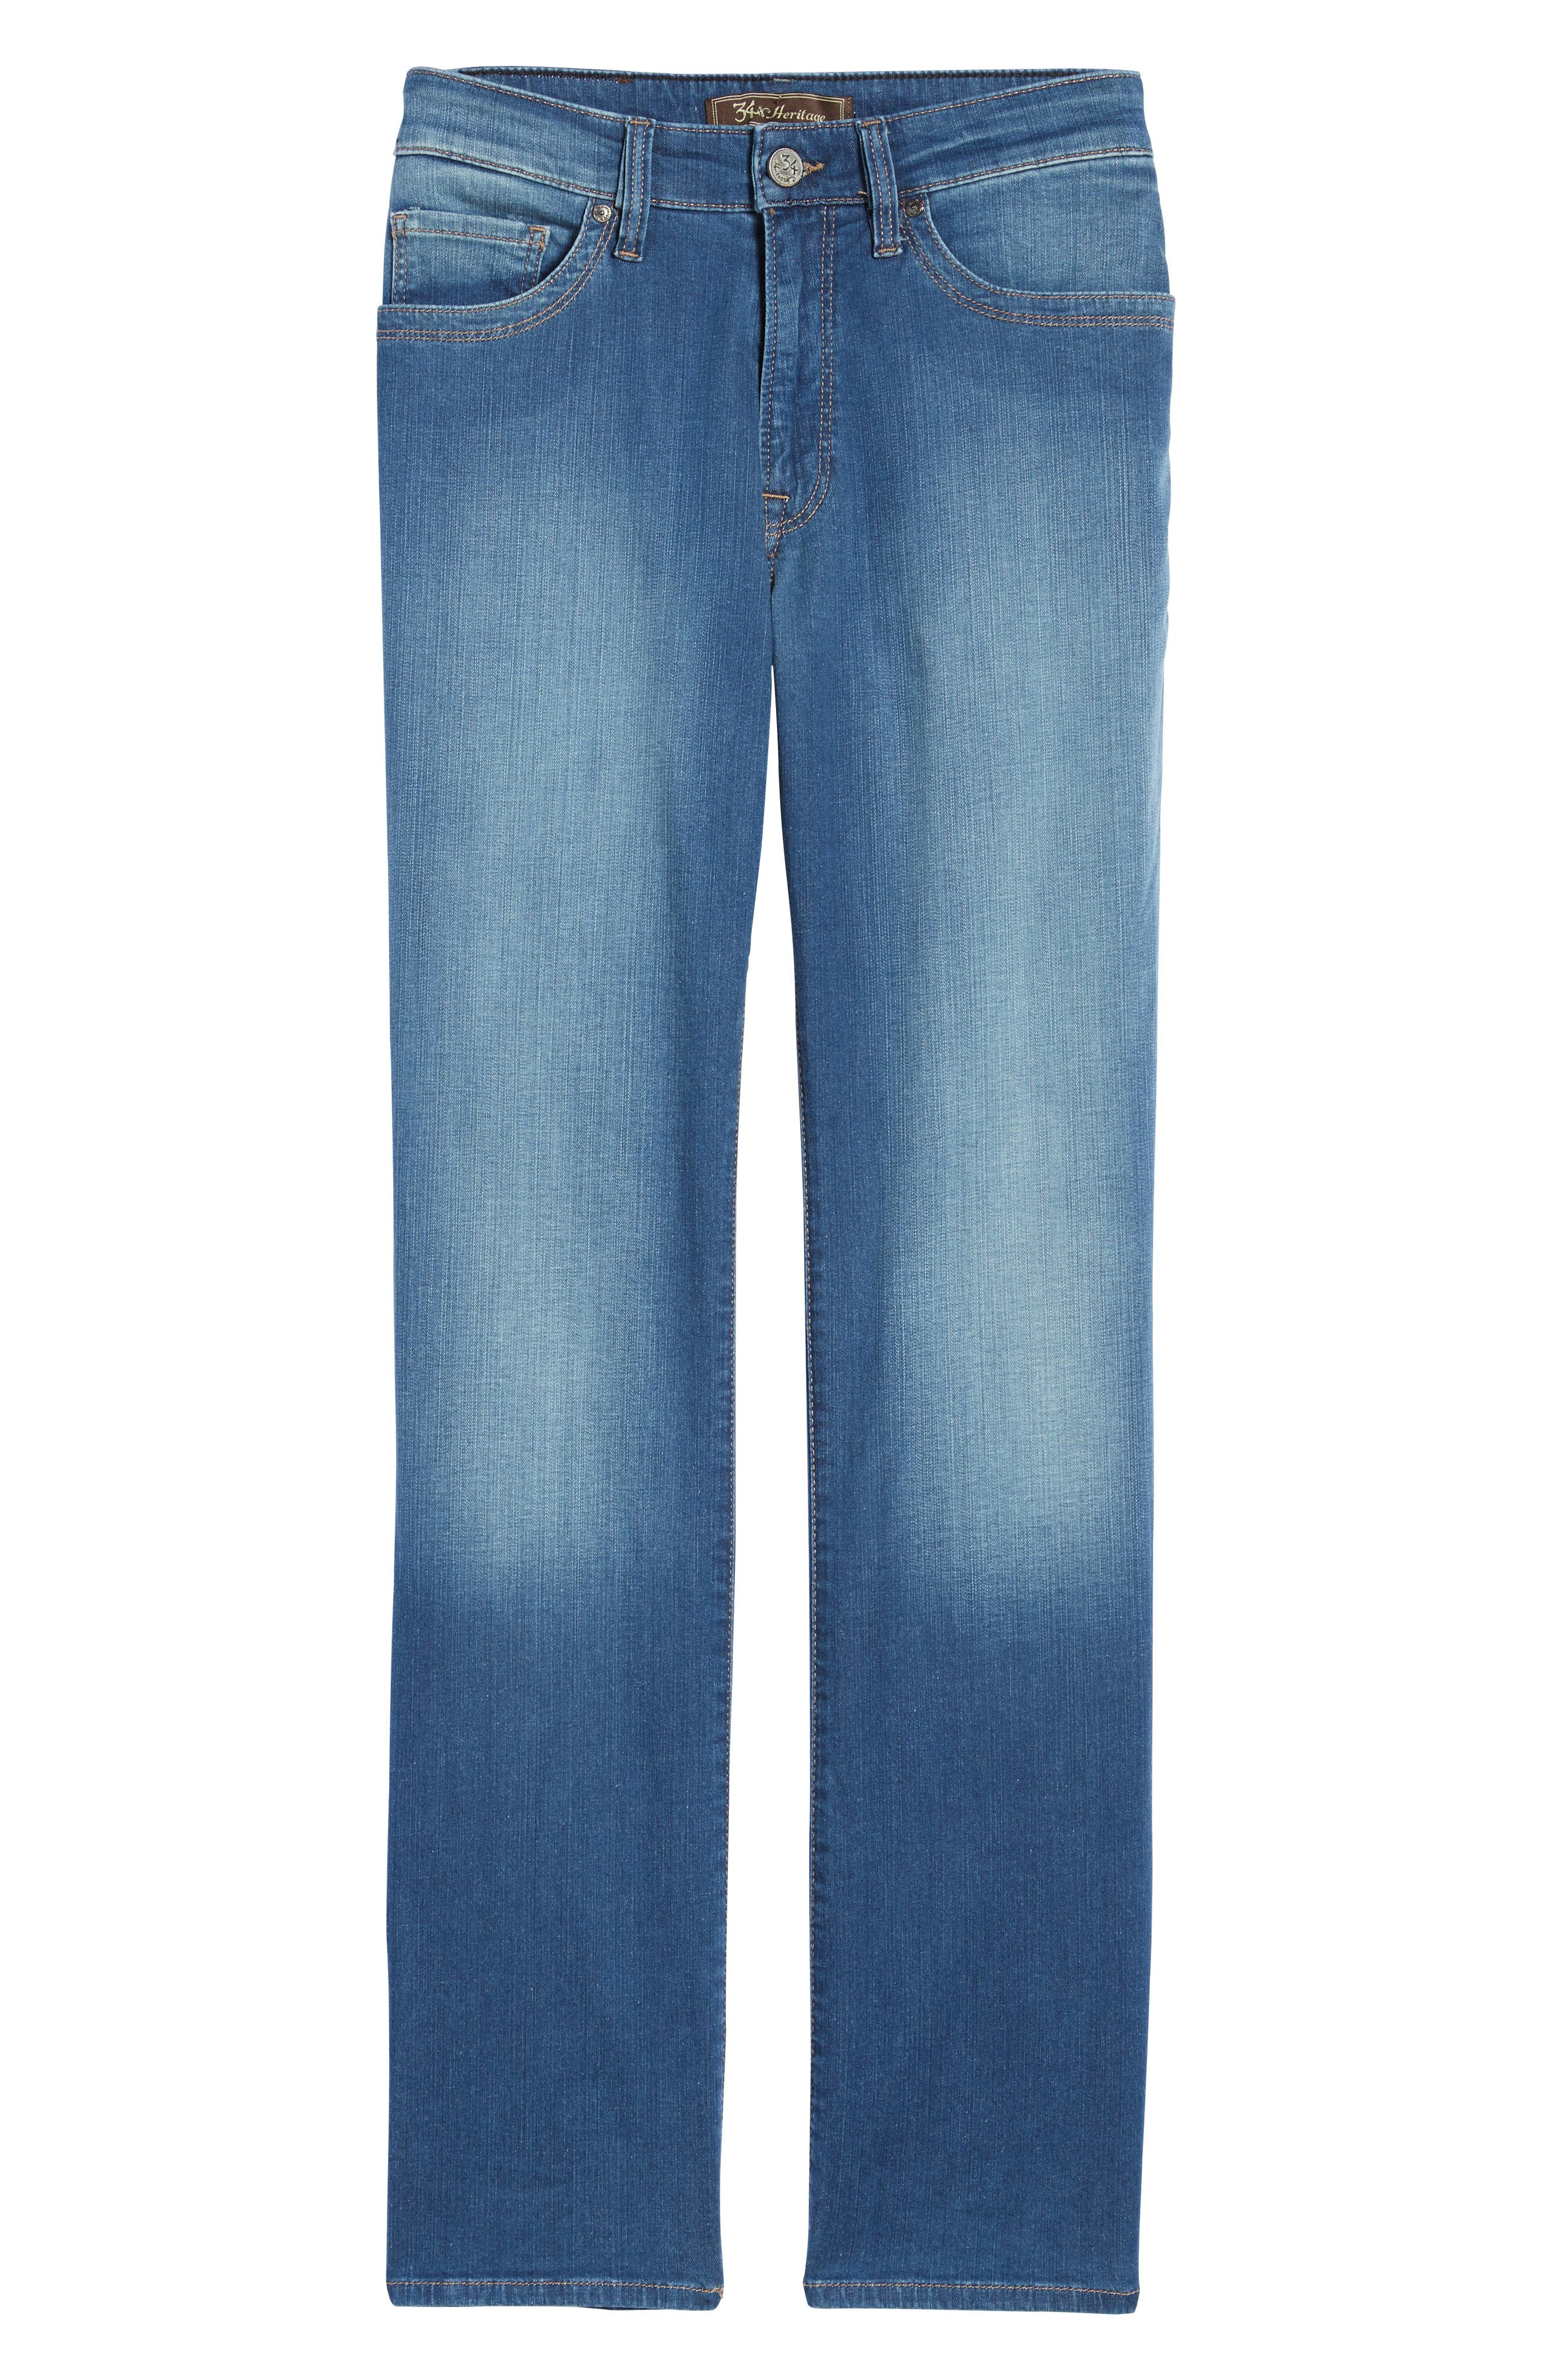 34 HERITAGE,                             'Charisma' Classic Relaxed Fit Jeans,                             Alternate thumbnail 7, color,                             MID CASHMERE